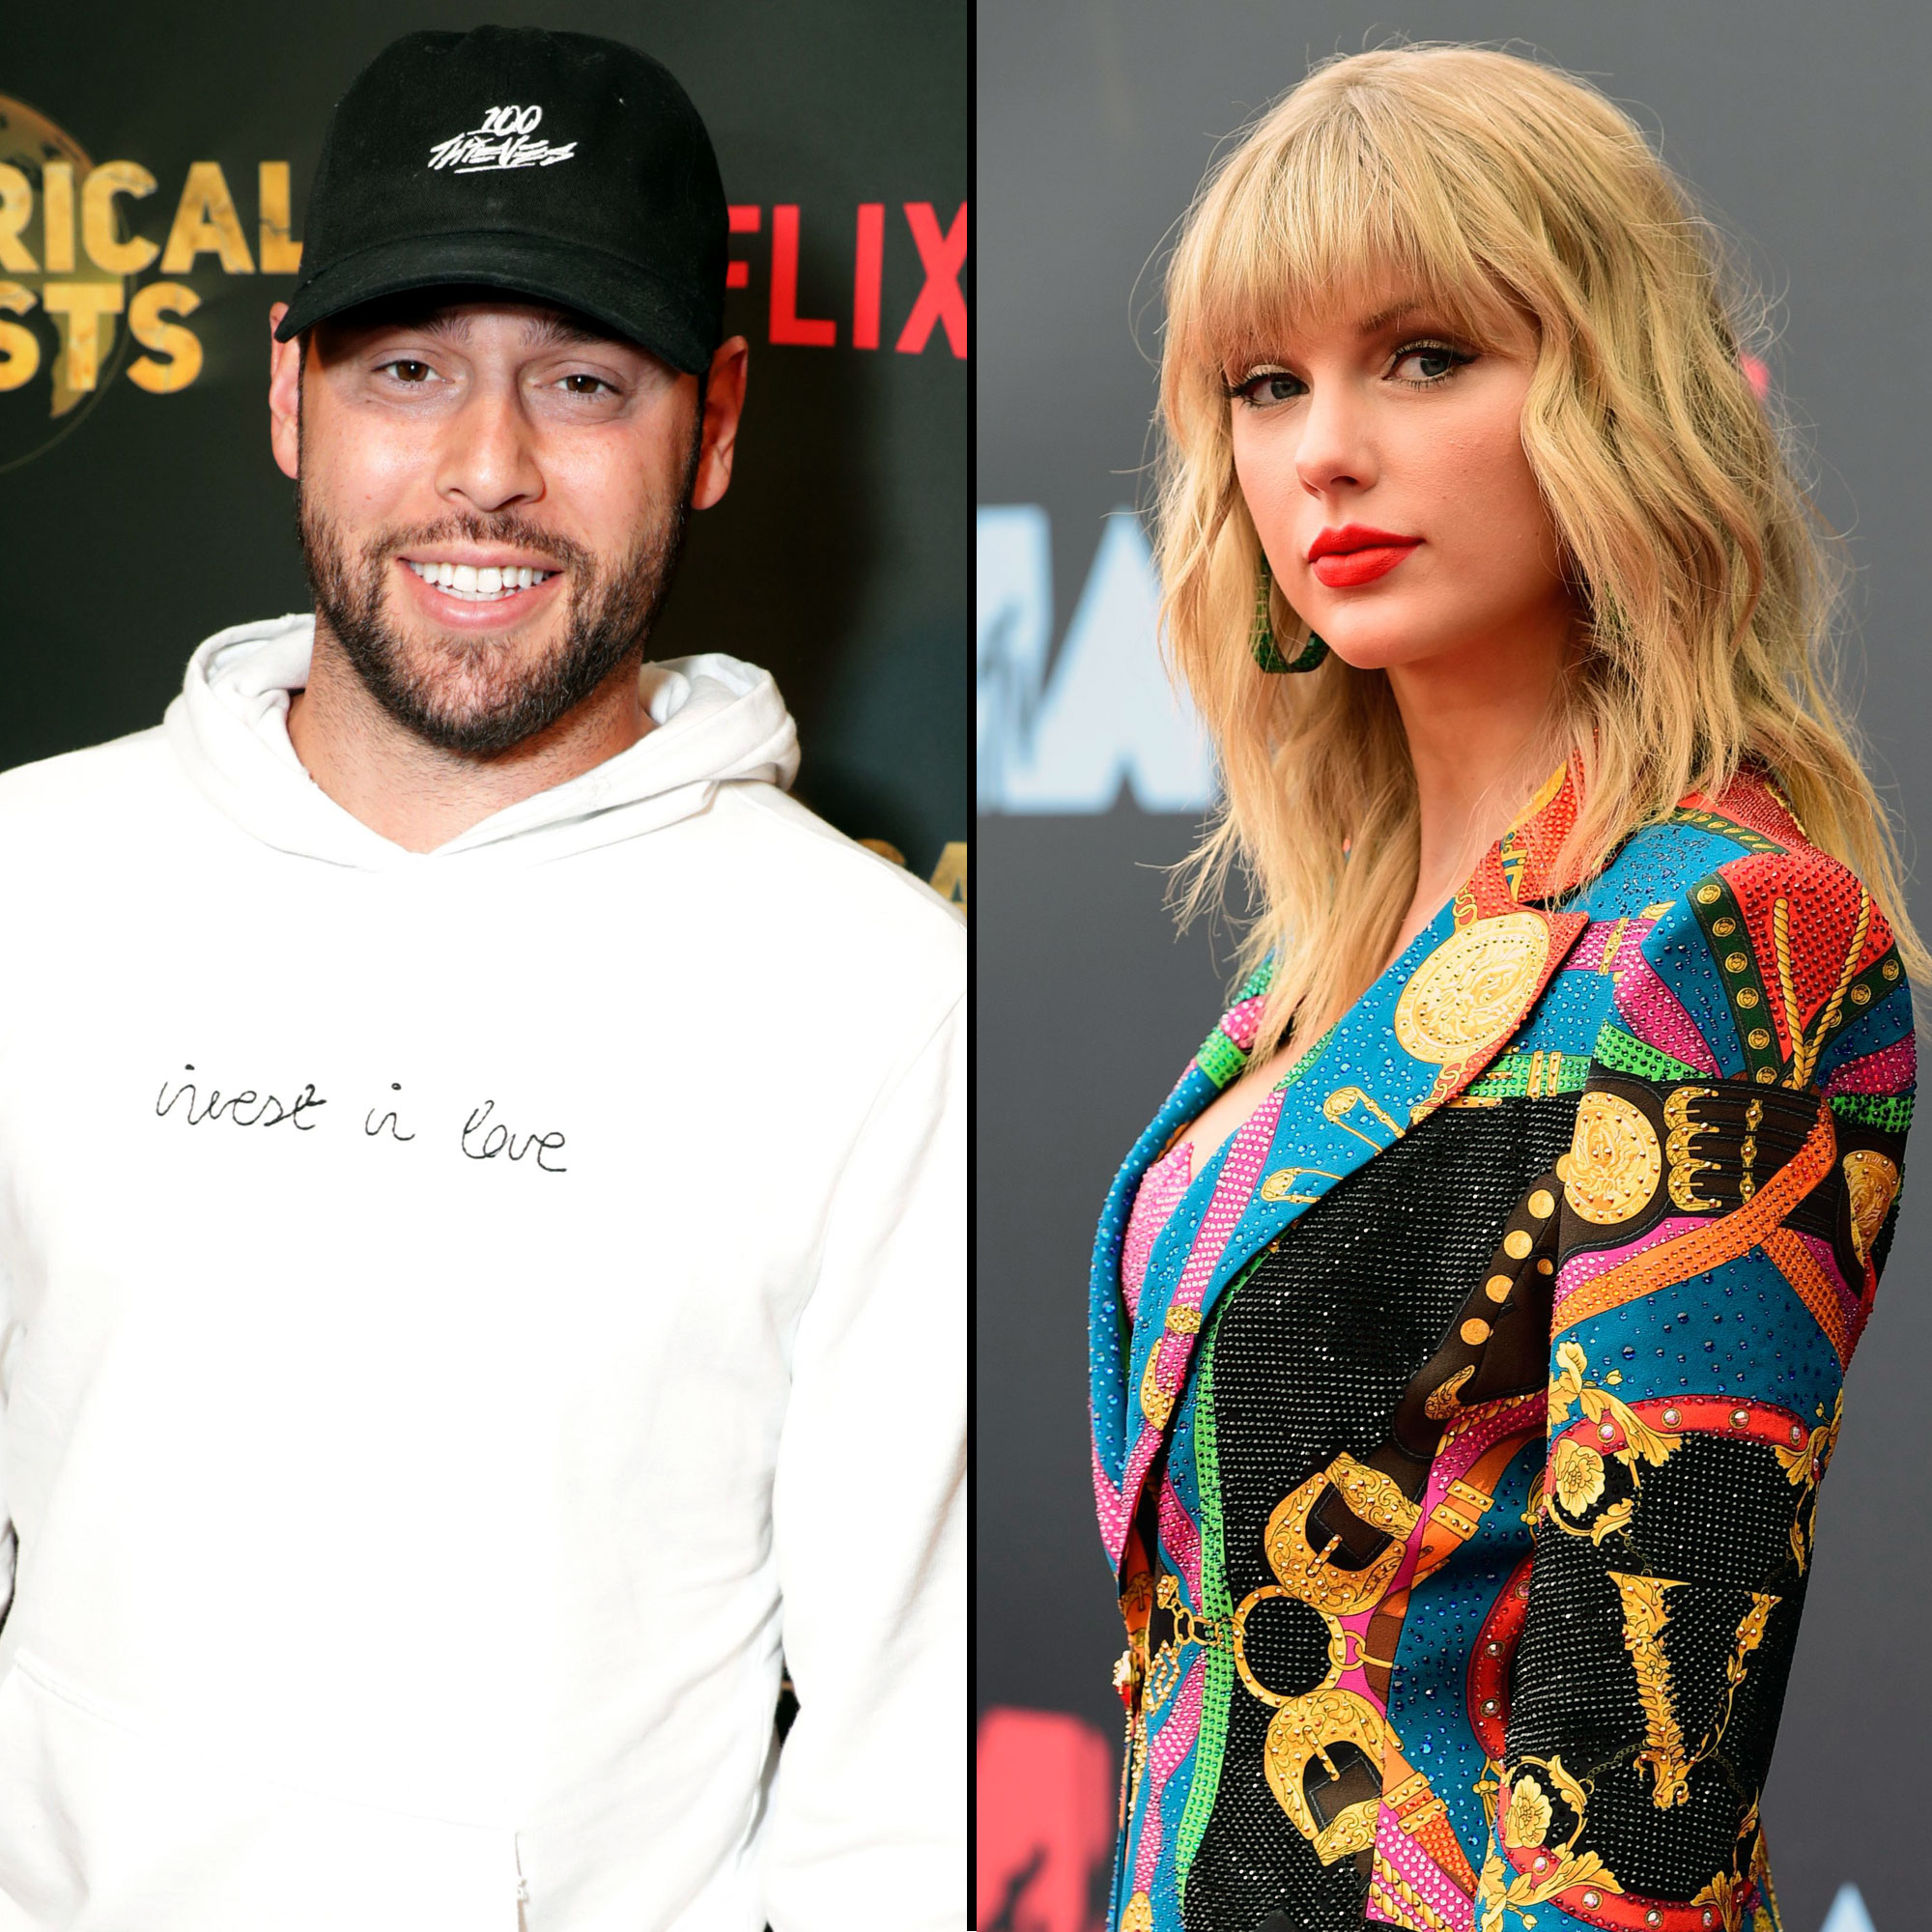 Scooter Braun Addresses Haters After Taylor Swift Drama